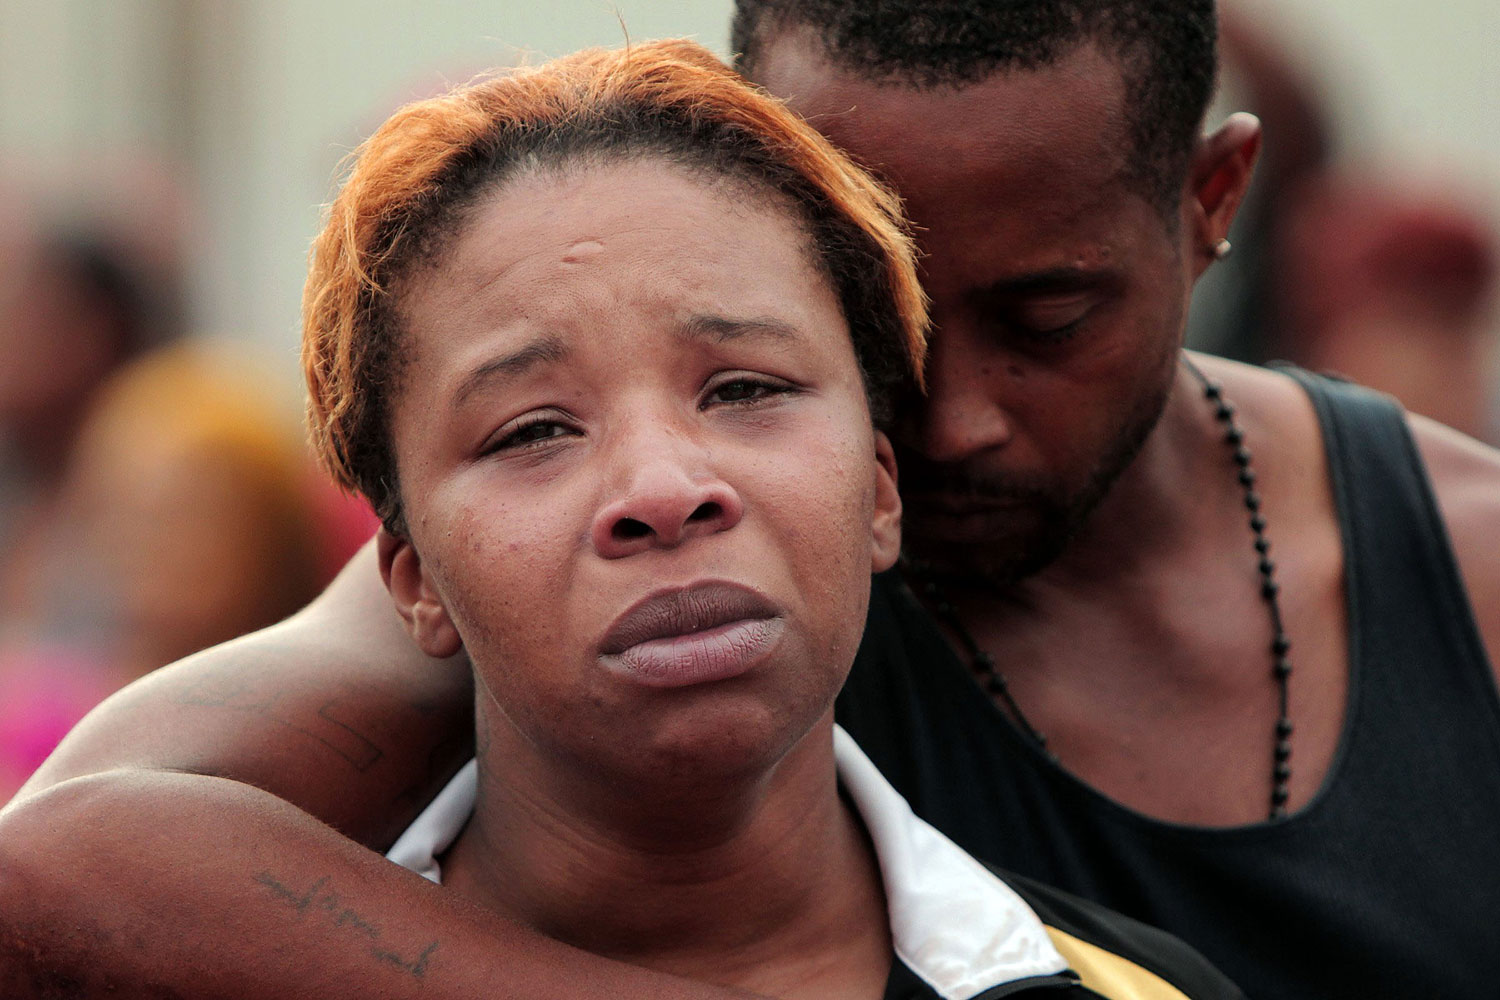 Lesley McSpadden, left, is comforted by her husband, Louis Head, after her 18-year-old son, Michael Brown was shot and killed by police in the middle of the street in Ferguson, Mo., near St. Louis on Aug. 9, 2014.